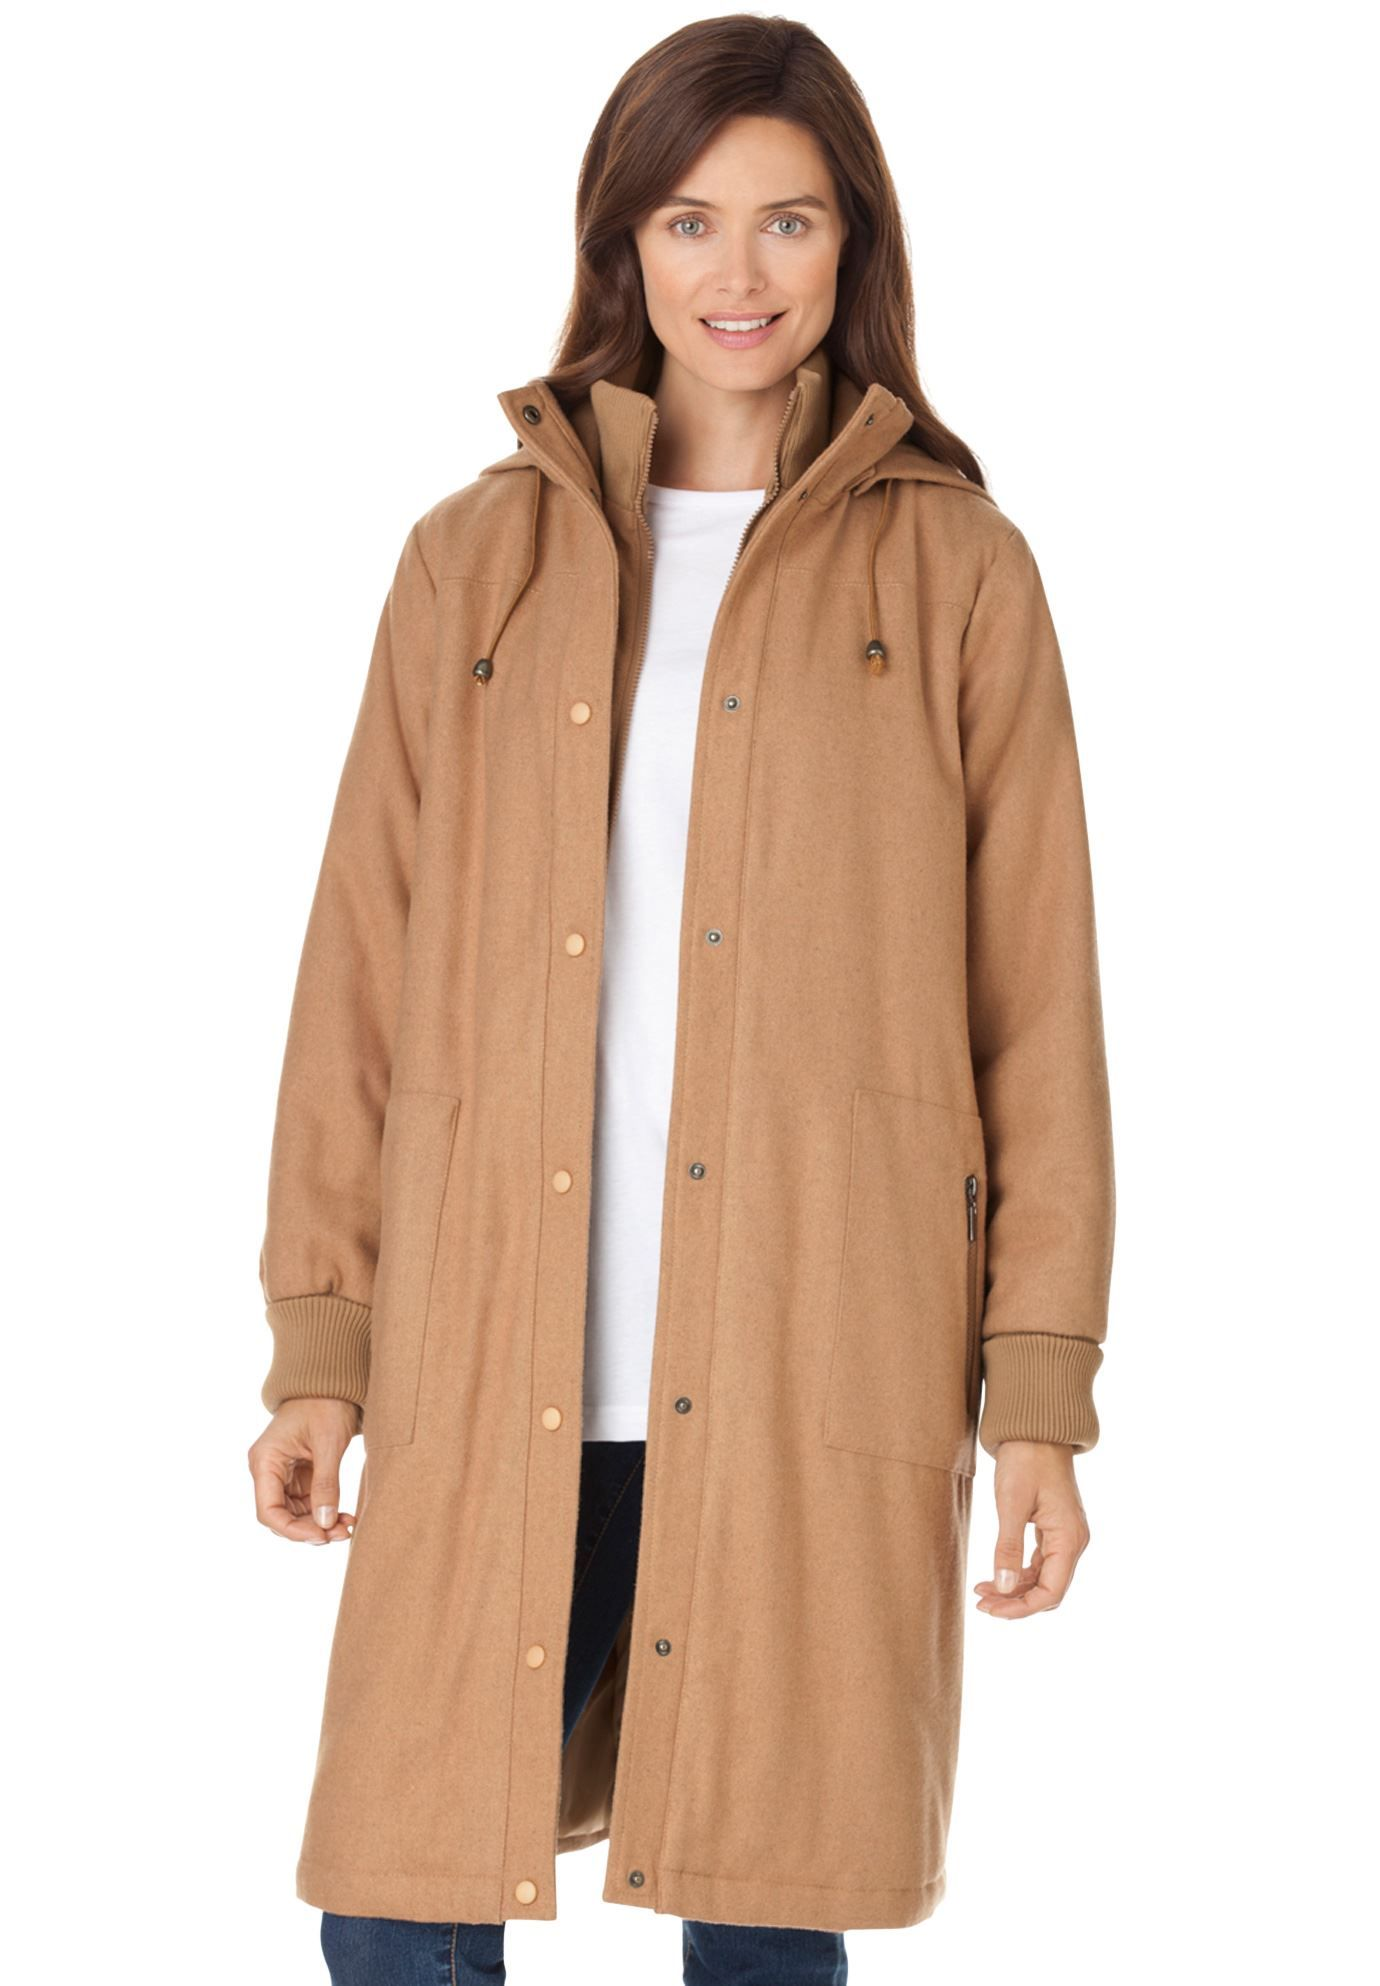 ddbfd654fda Coat in wool blend